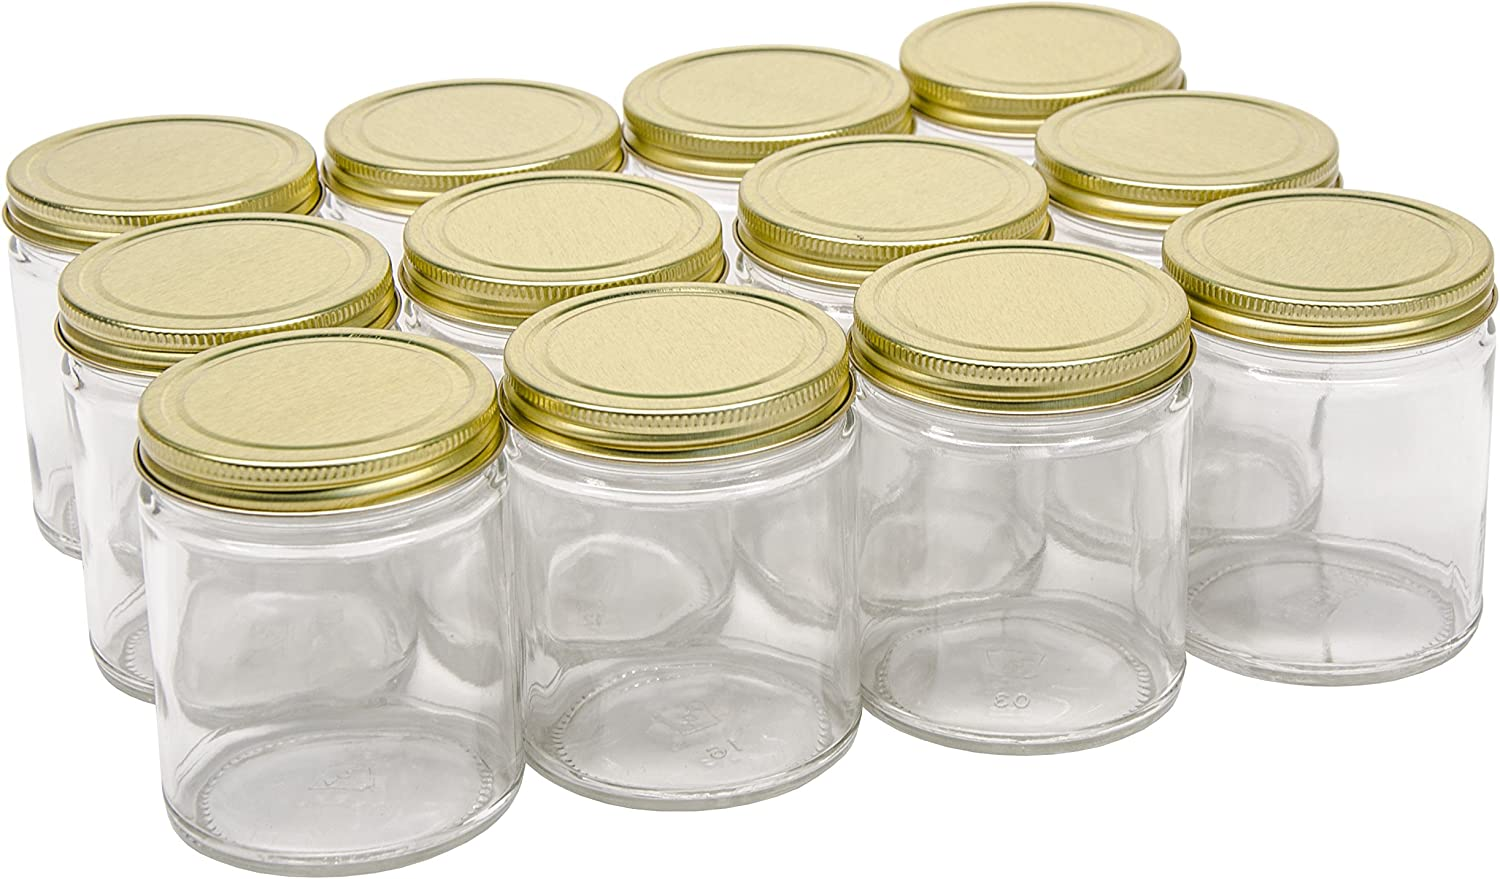 North Mountain Supply 9 Ounce Glass Straight Sided Mason Canning Jars- with 70mm Gold Metal Lids - Case of 12